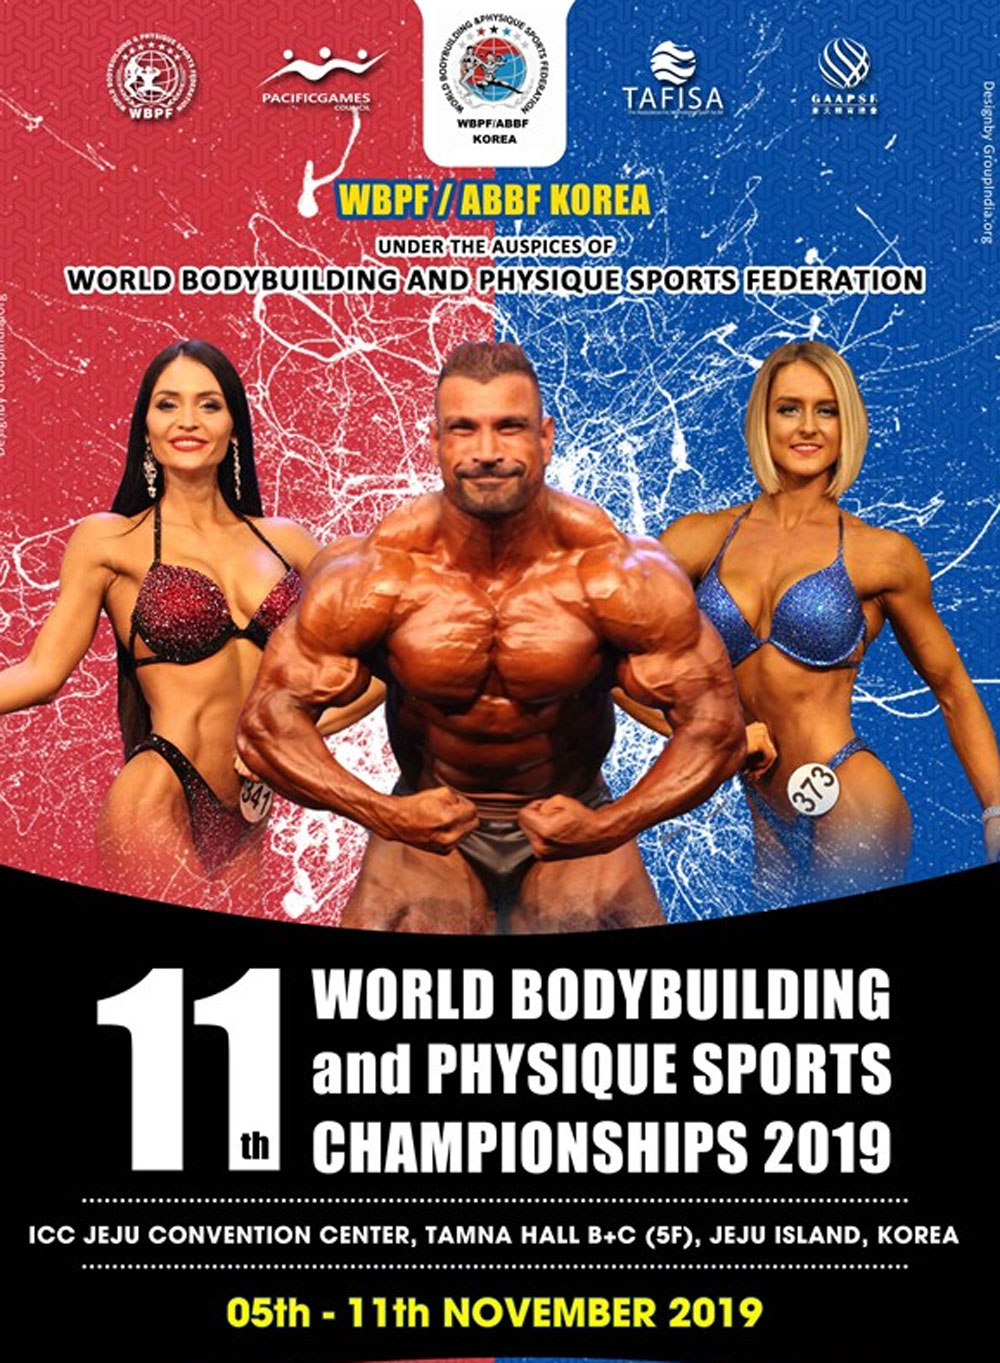 Vietnamese athletes, gold medal, world bodybuilding championships, Physique Sports Federation,  female bodybuilding